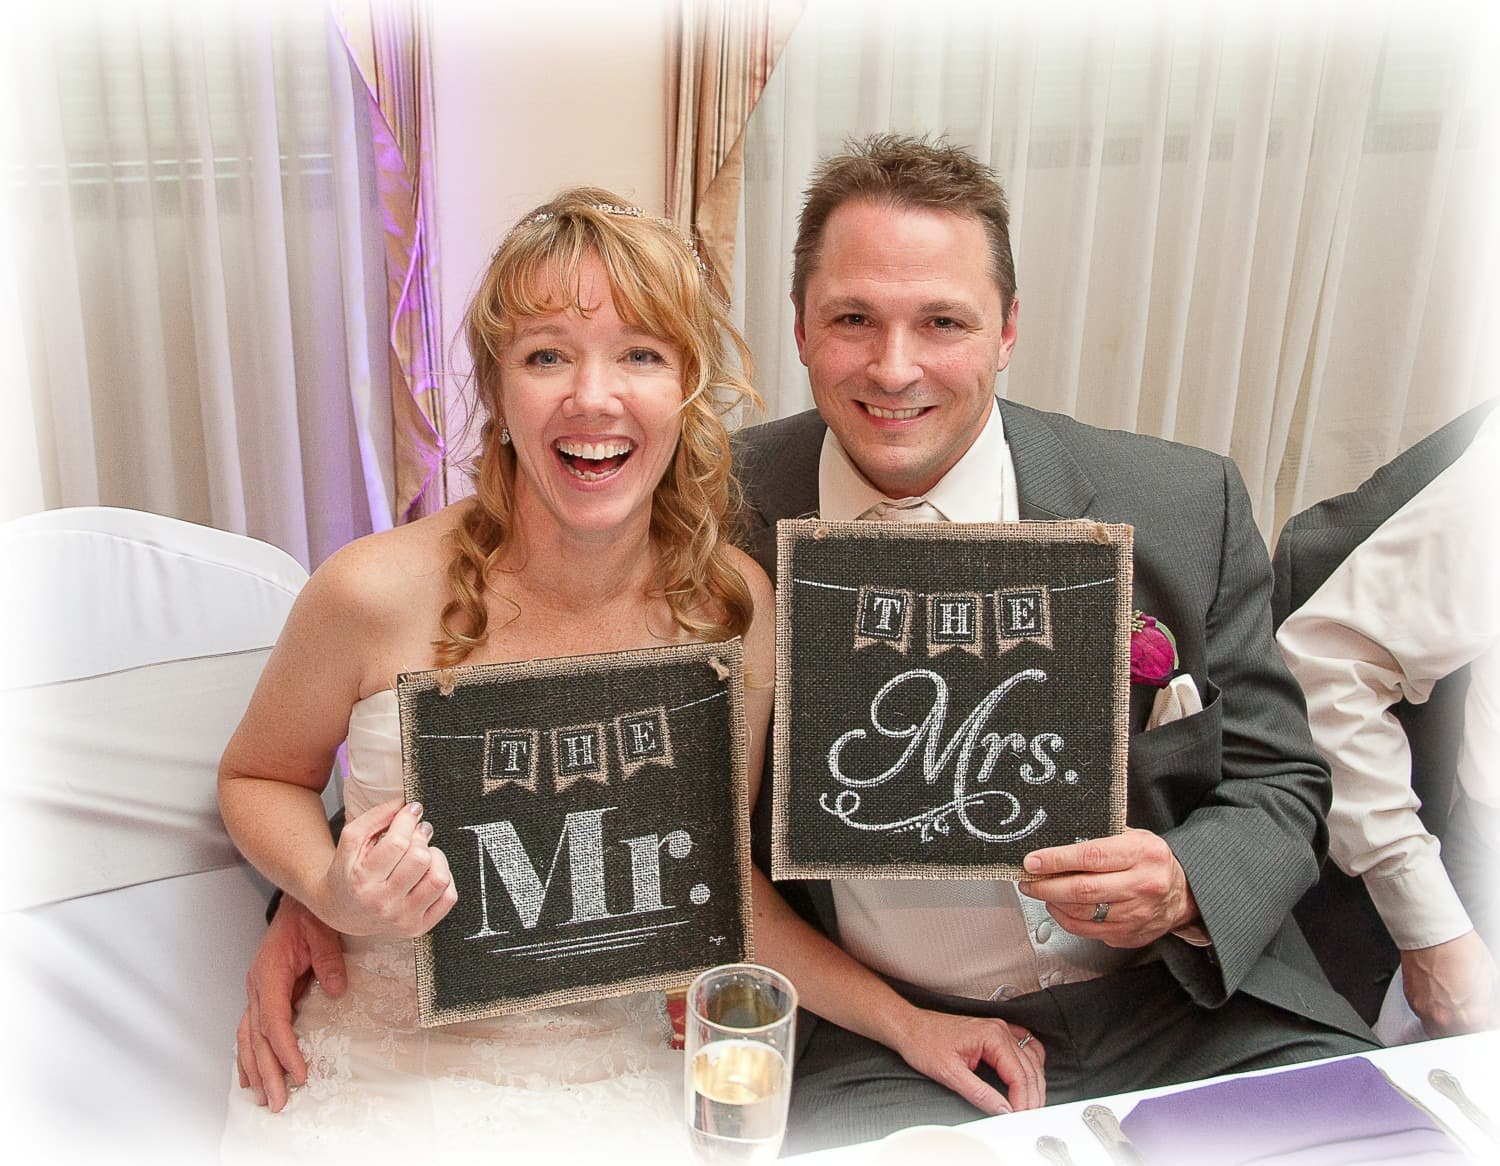 Mr. and Mrs. Signs at wedding party